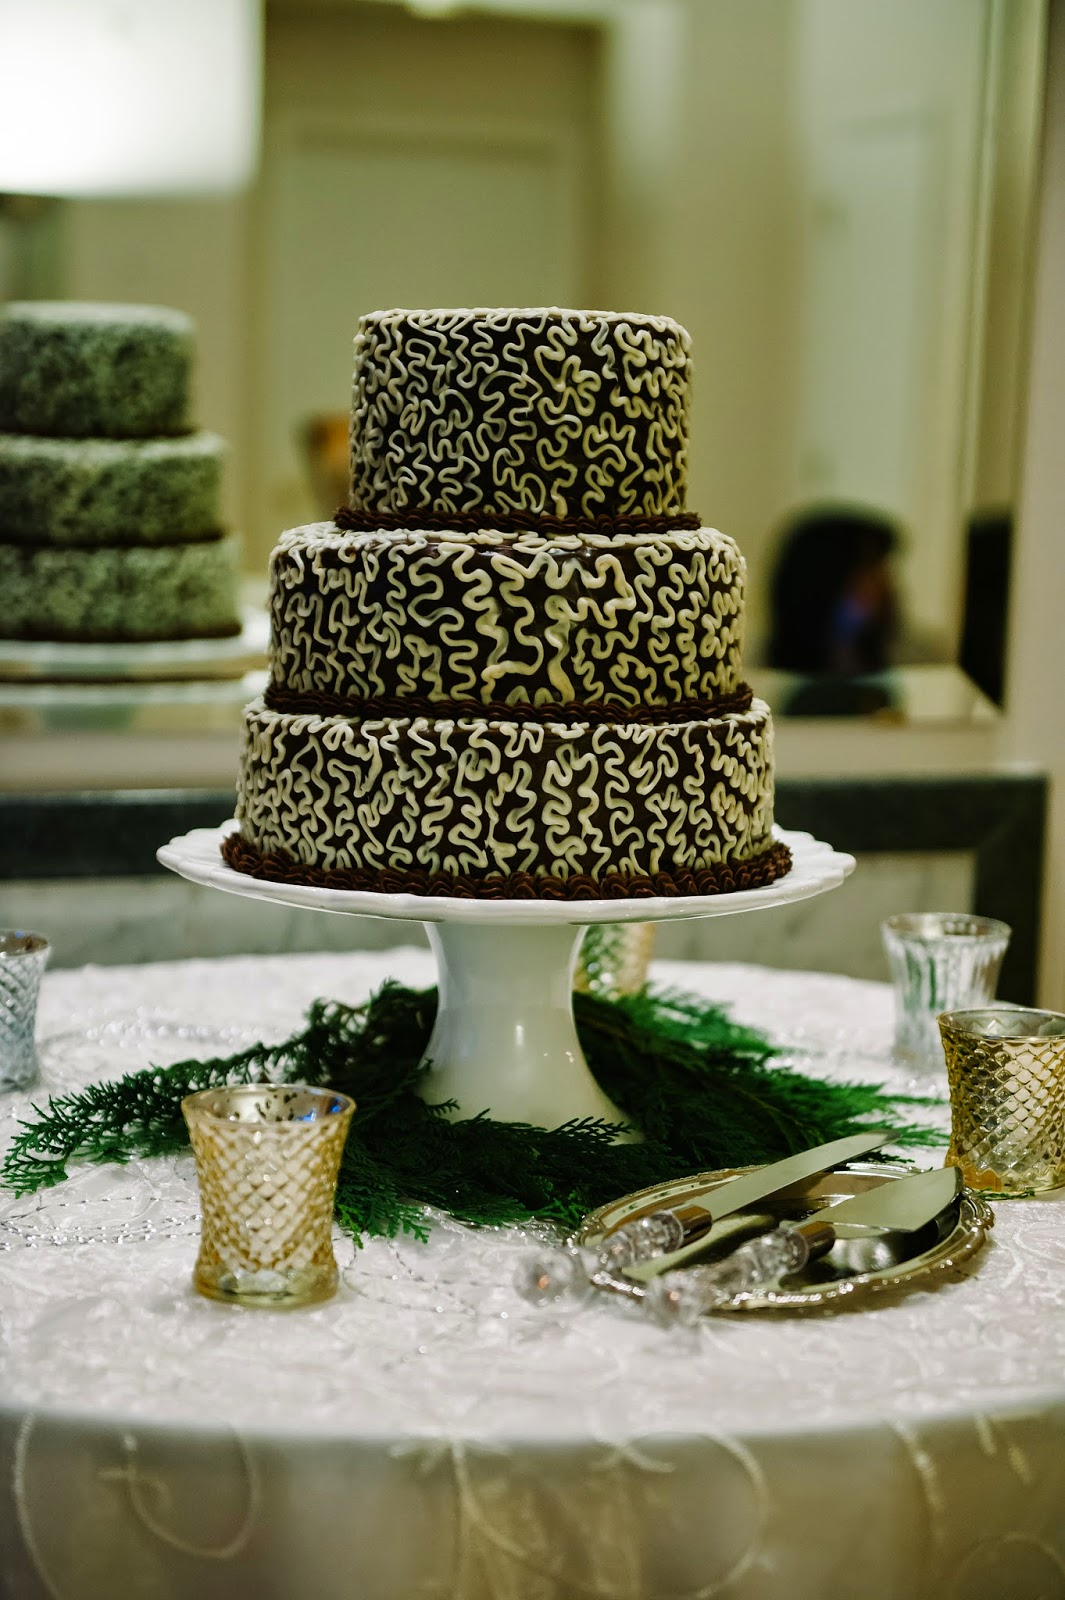 Gluten-Free Dessert Chocolate Wedding Cake